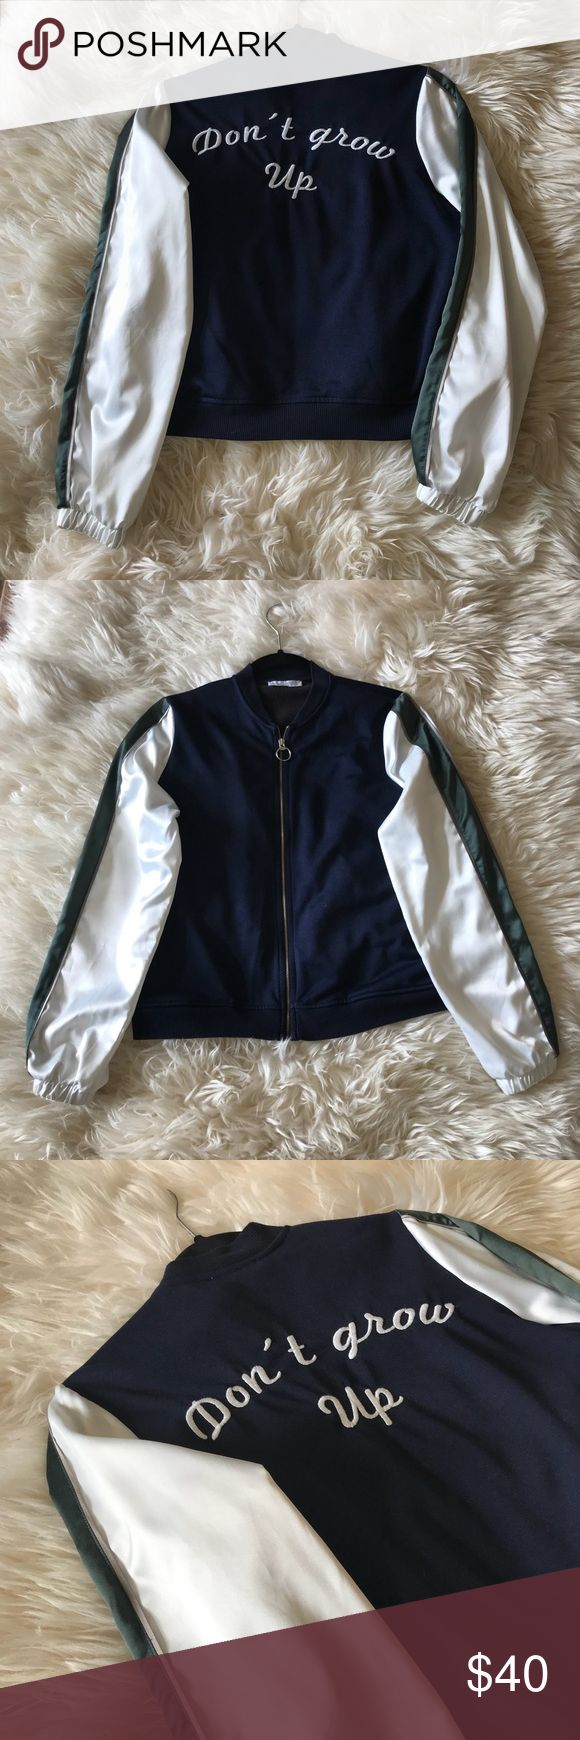 """Zara bomber jacket Zara bomber jacket with satin-like sleeves. The body is a navy blue knit material and the sleeves are white with olive stripe. Zipper with a ring and """"don't grow up"""" quote on the back. Zara Jackets & Coats"""